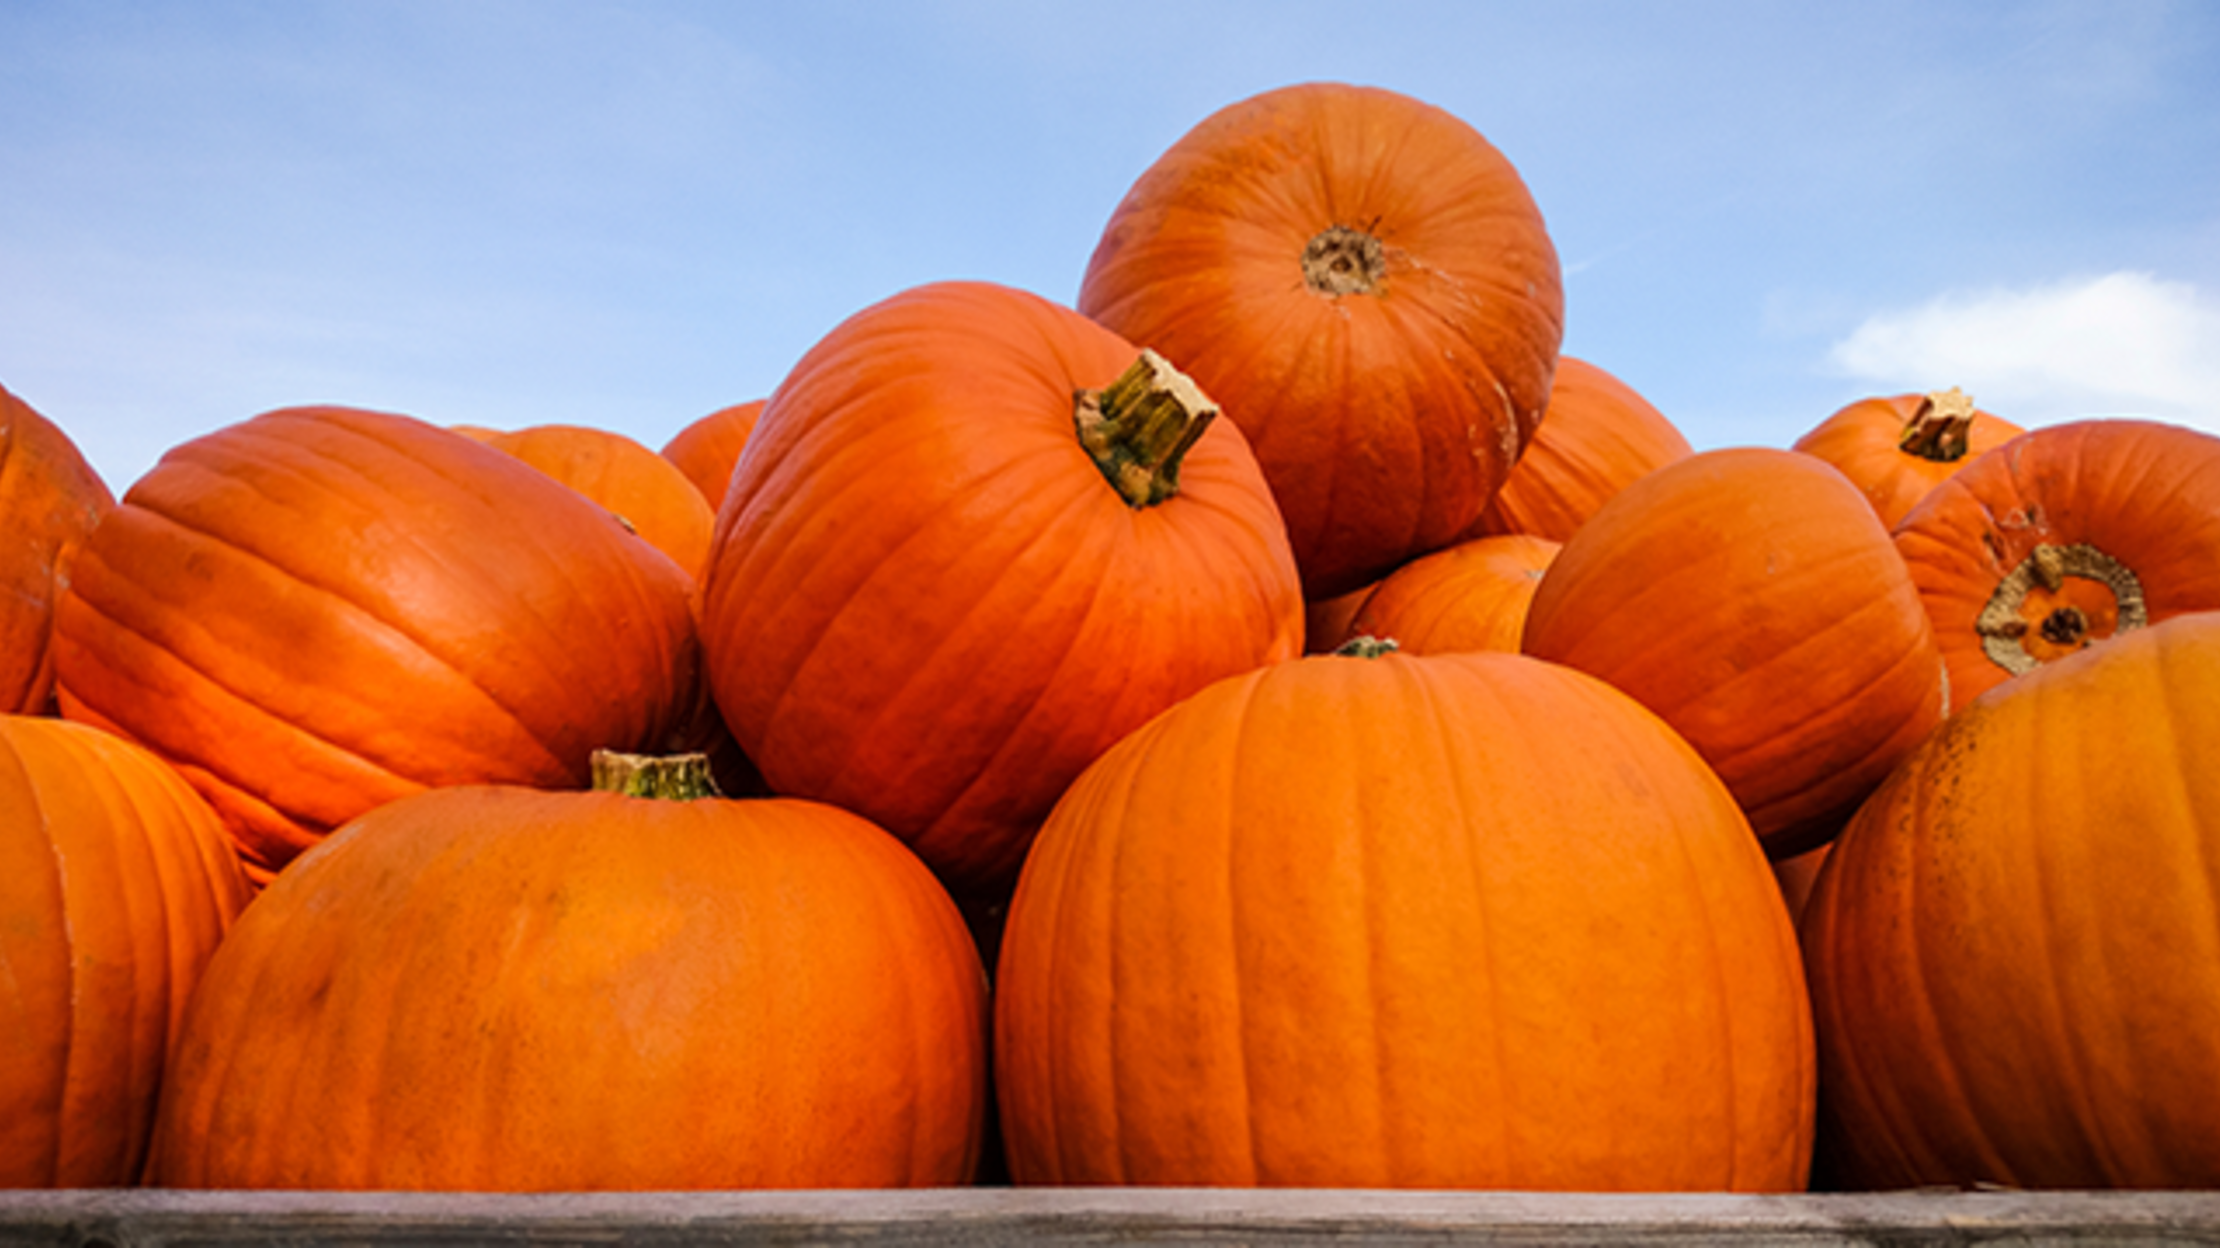 From Pasture to Porches: How Halloween Pumpkins Are Grown